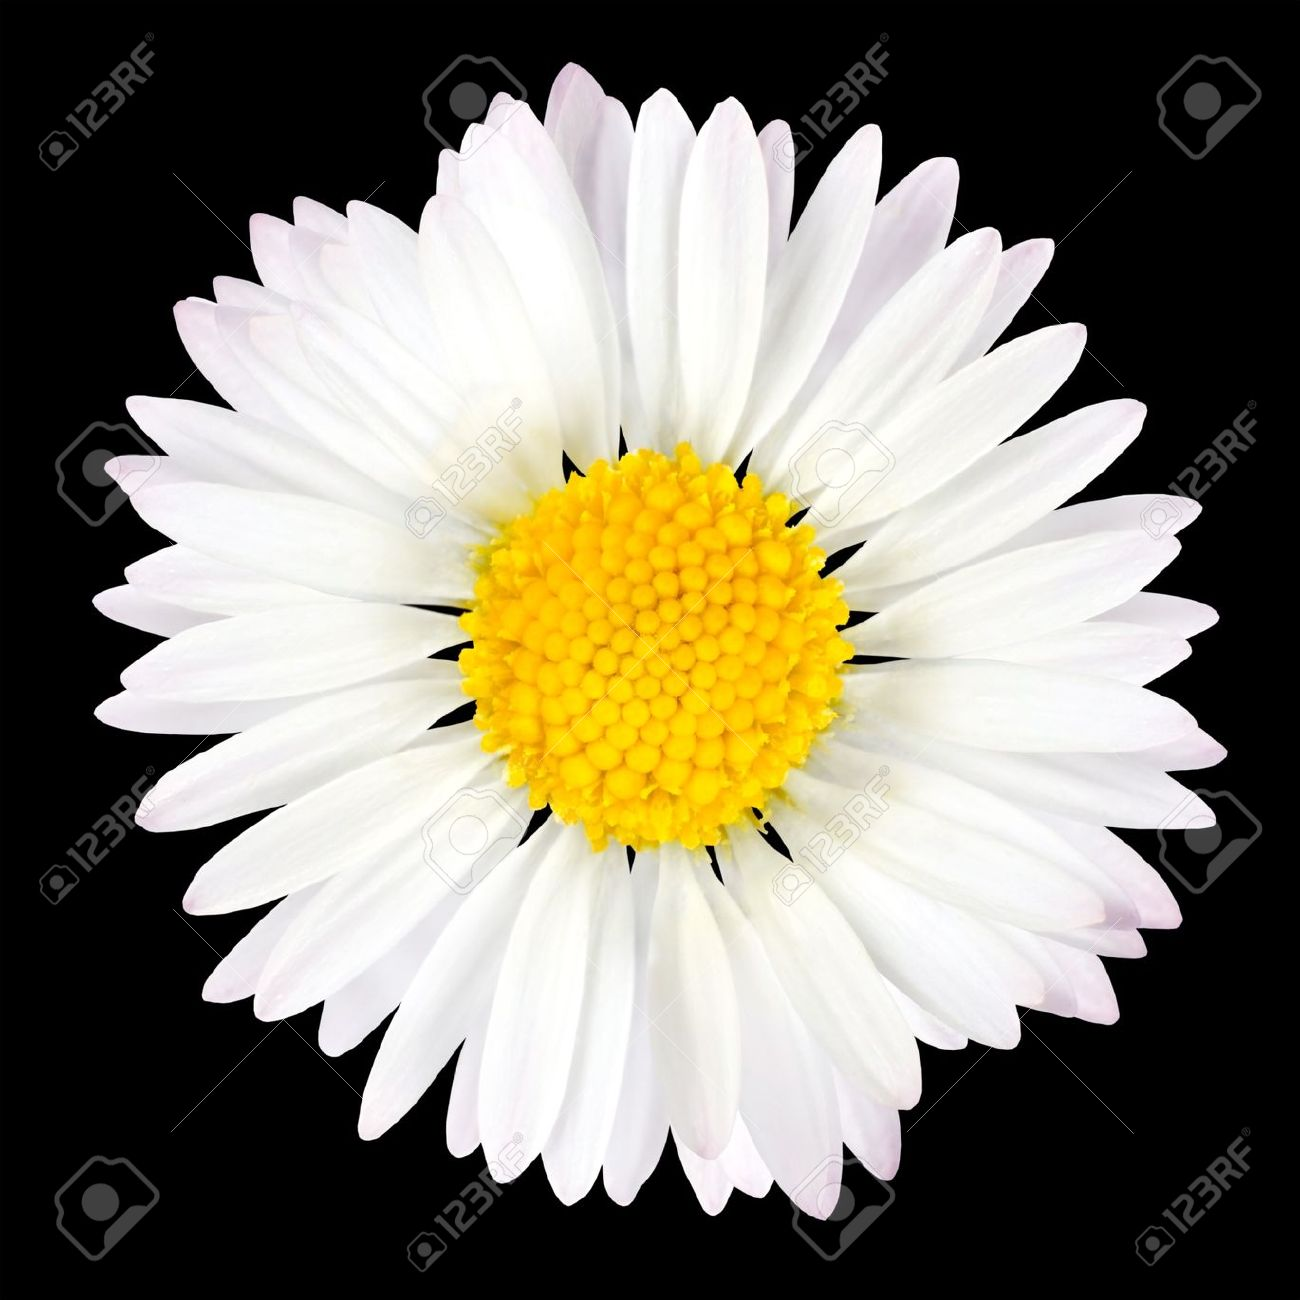 Daisy flower isolated on black background white with yellow daisy flower isolated on black background white with yellow center stock photo 14124473 mightylinksfo